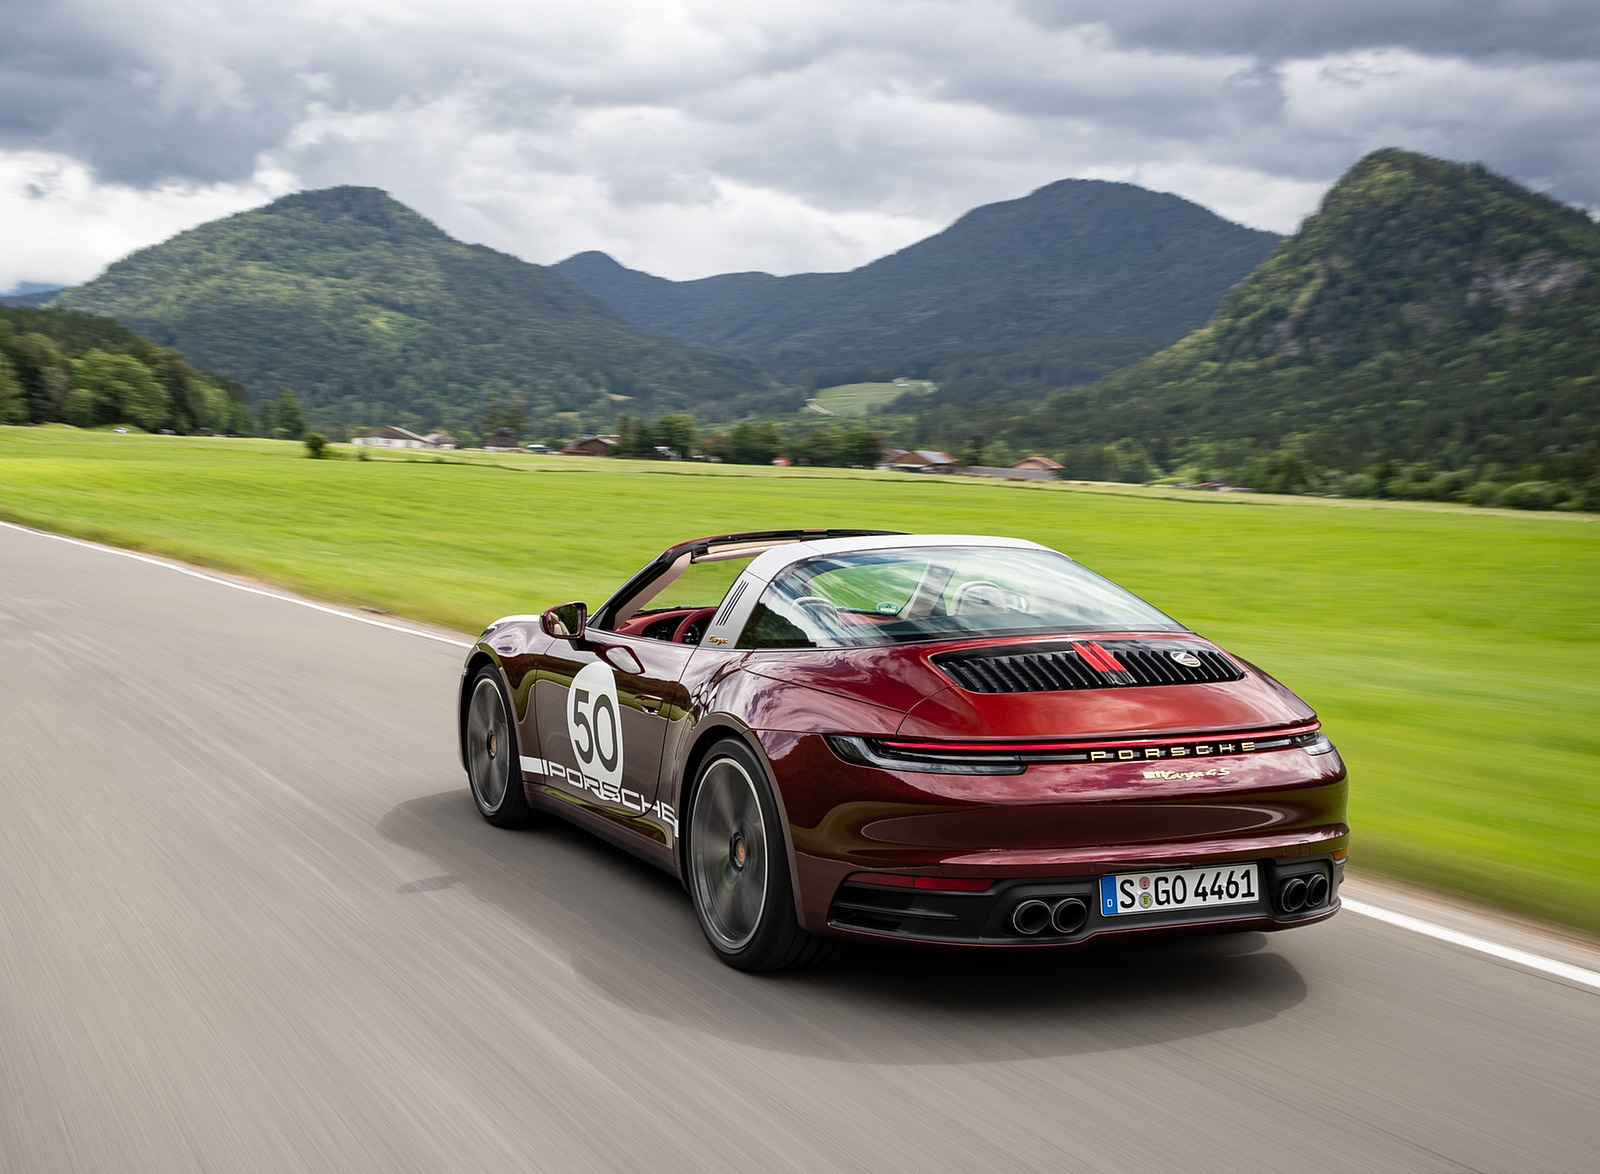 2021 Porsche 911 Targa 4S Heritage Design Edition (Color: Cherry Metallic) Rear Three-Quarter Wallpapers (4)